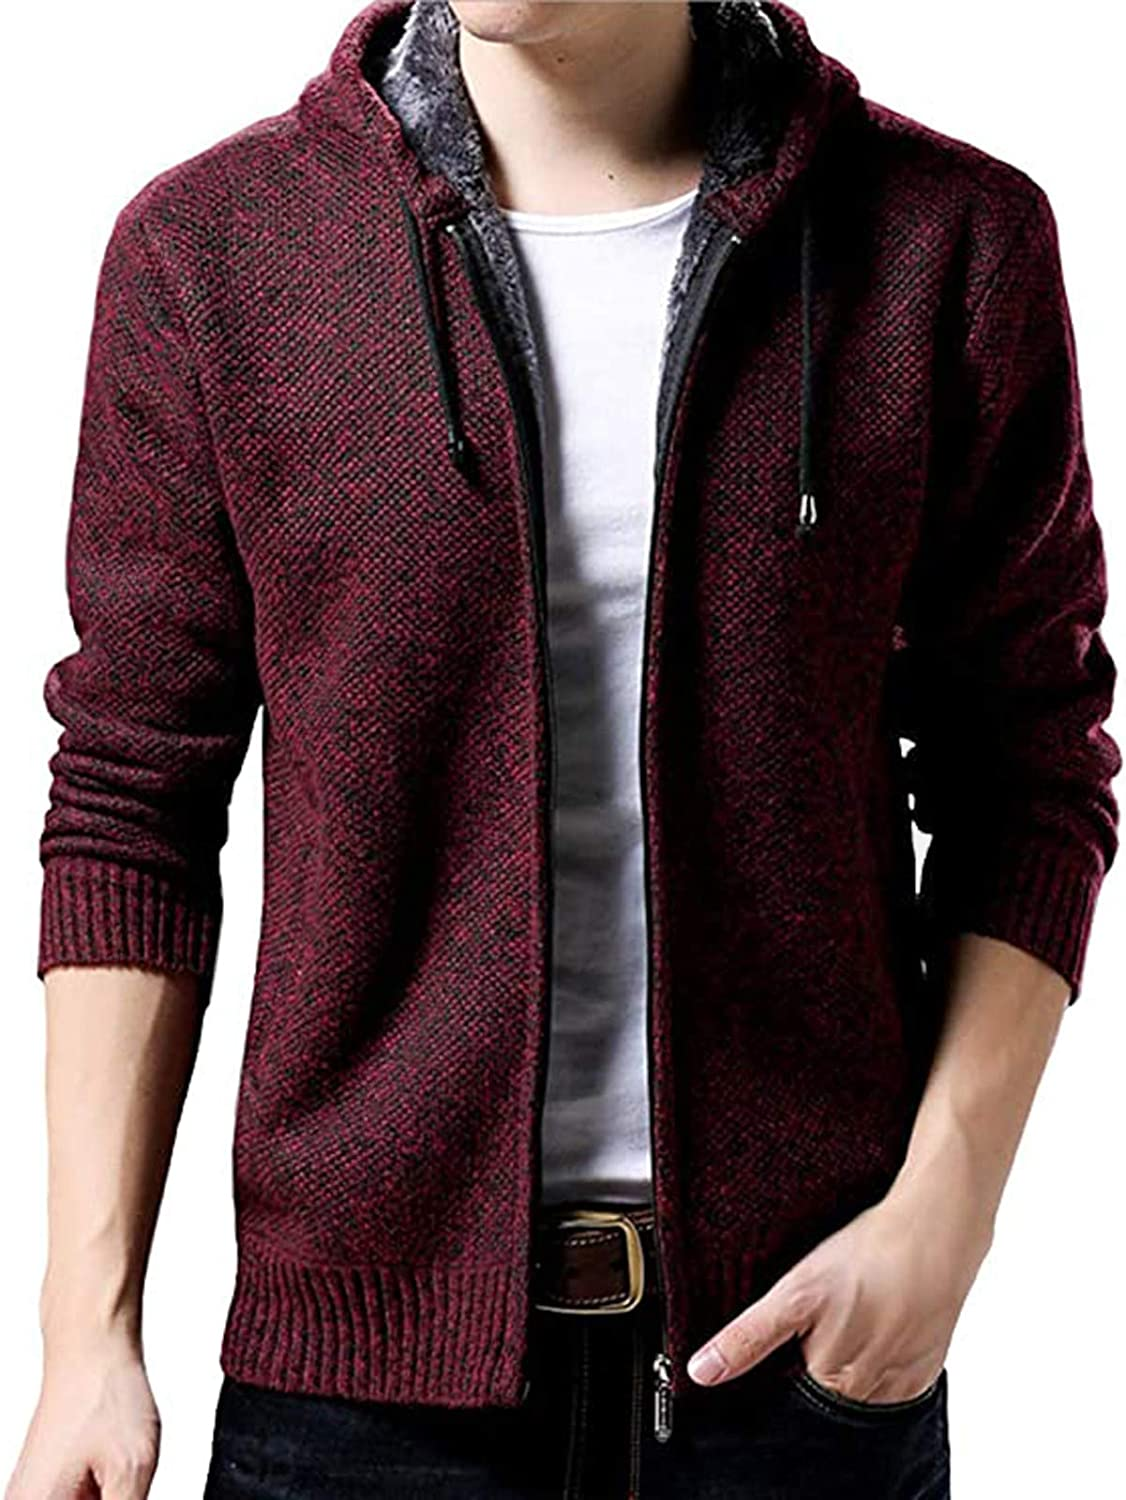 Beshion Men's Hooded Sweater Coat Long Sleeve Cardigan Sweater Open Front Cable Zip-Up Shirt Solid Color Jacket